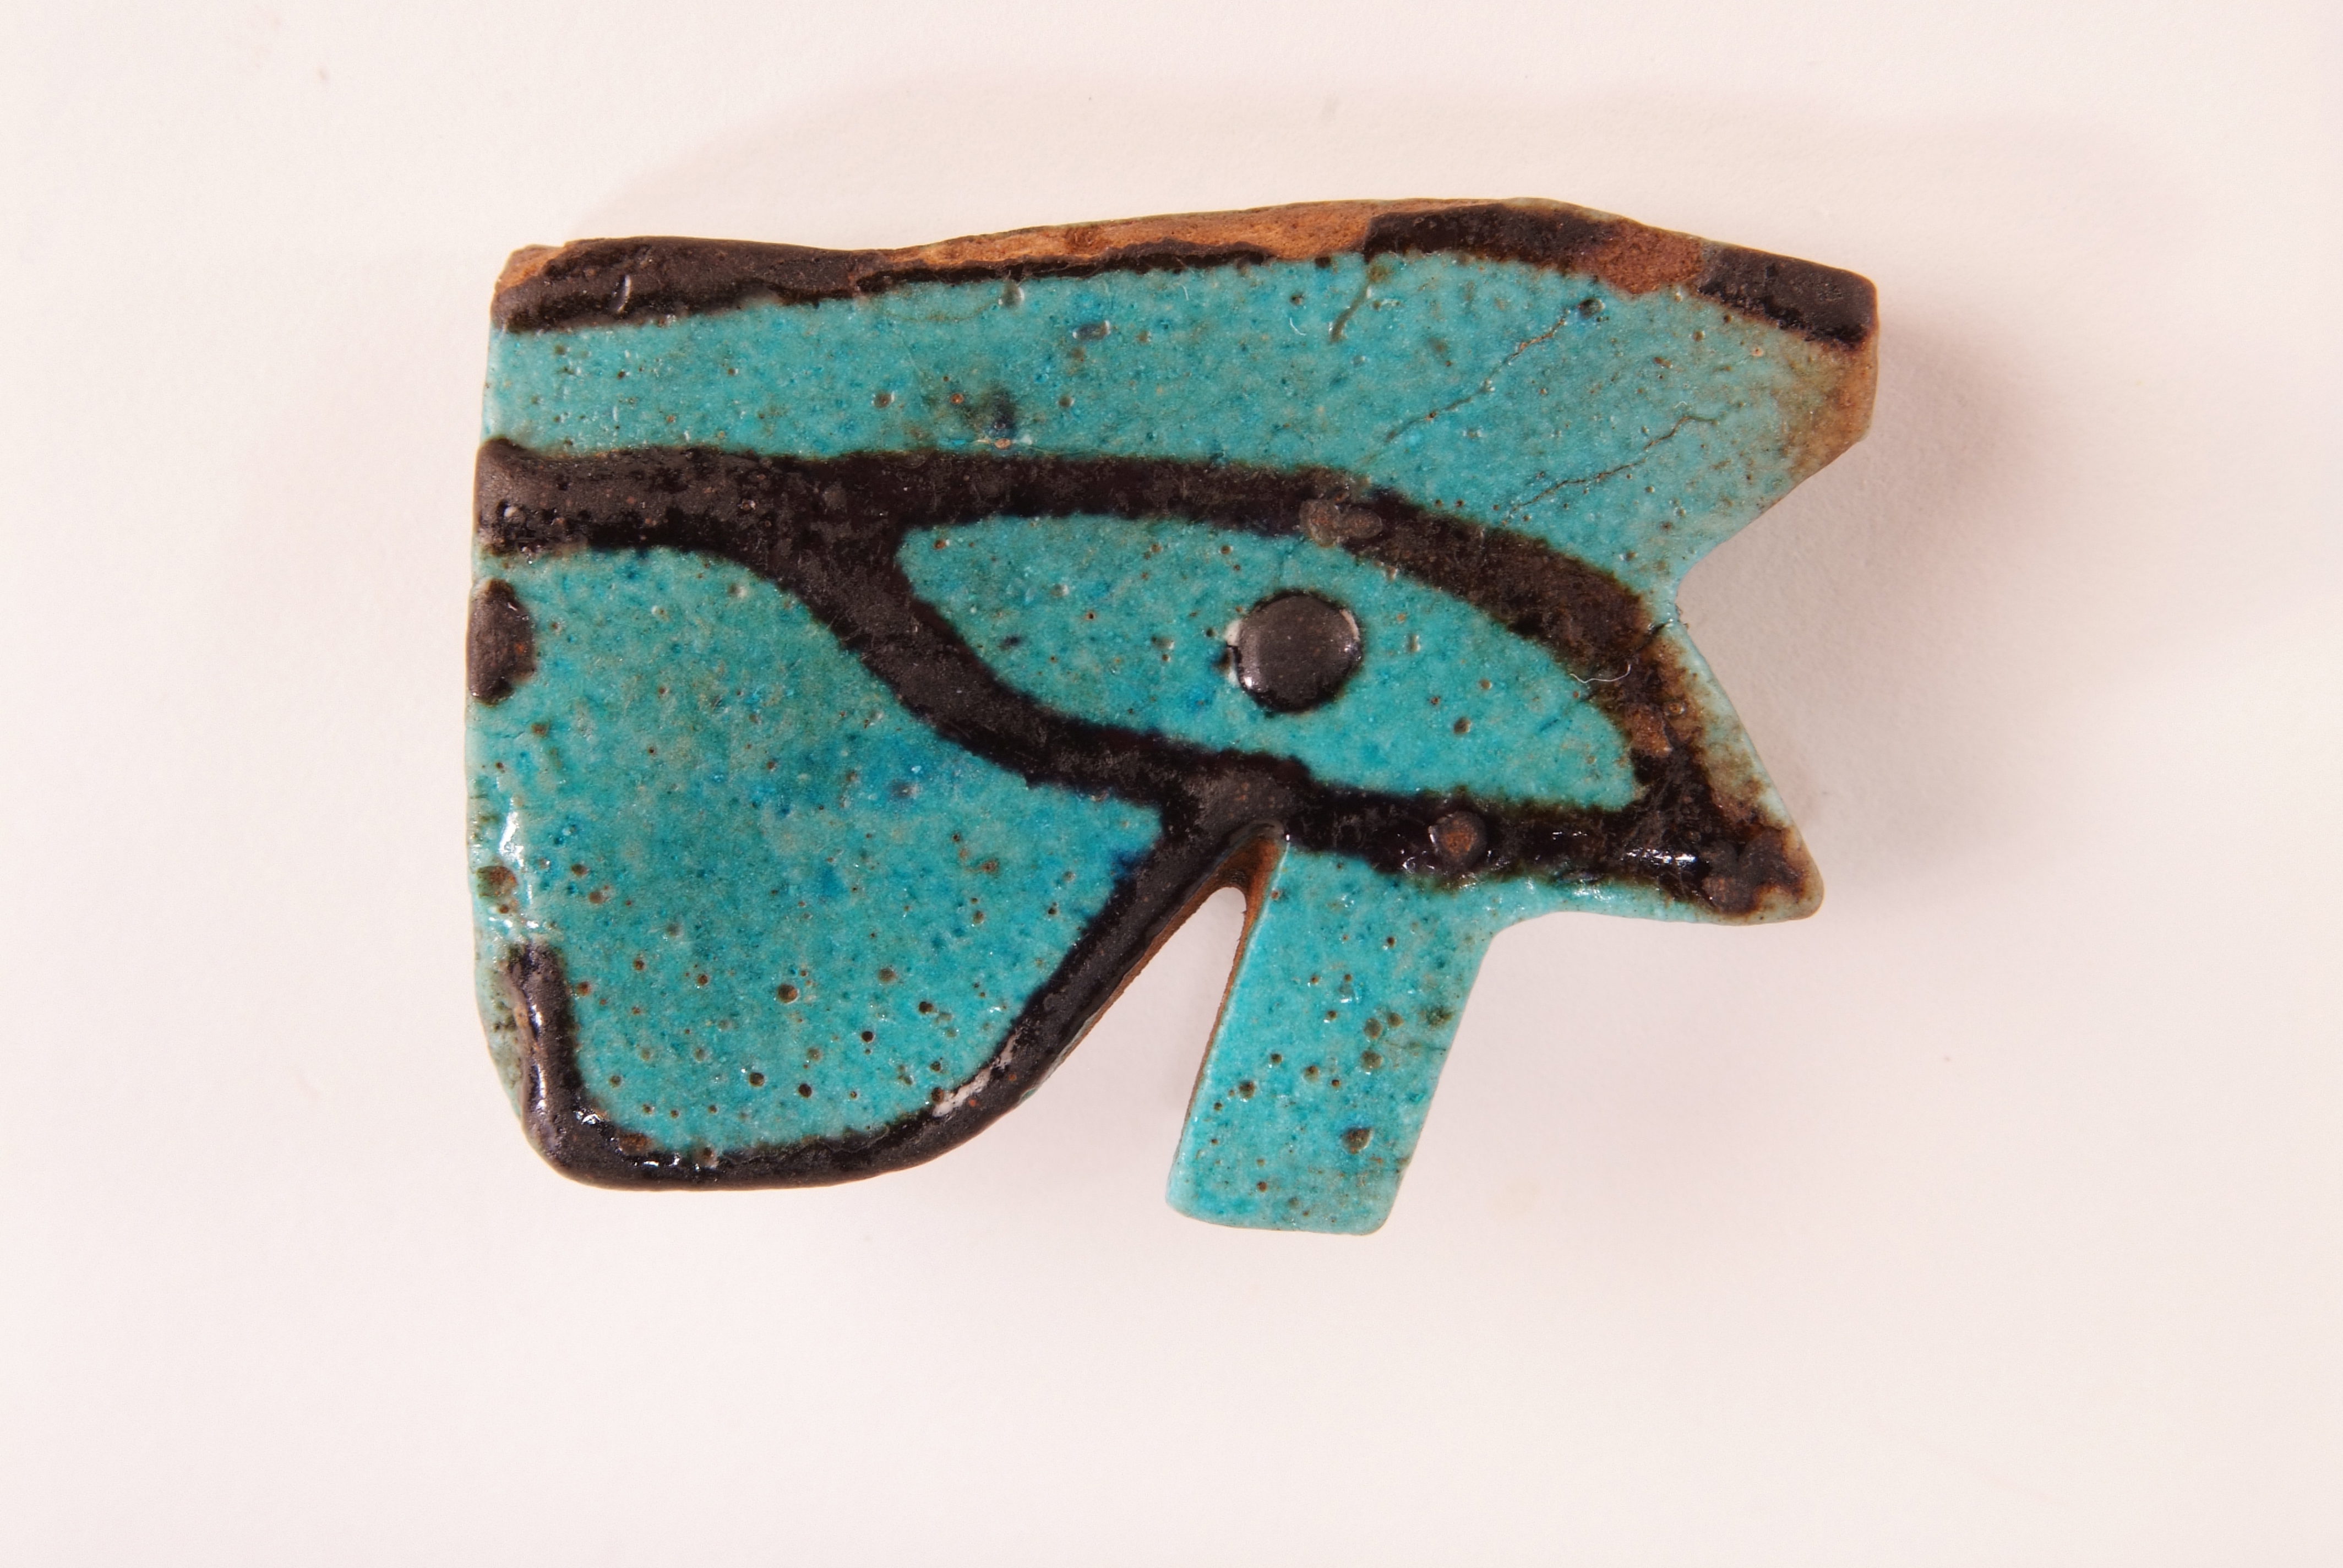 Turquoise ceramic piece made in the shape of an eye